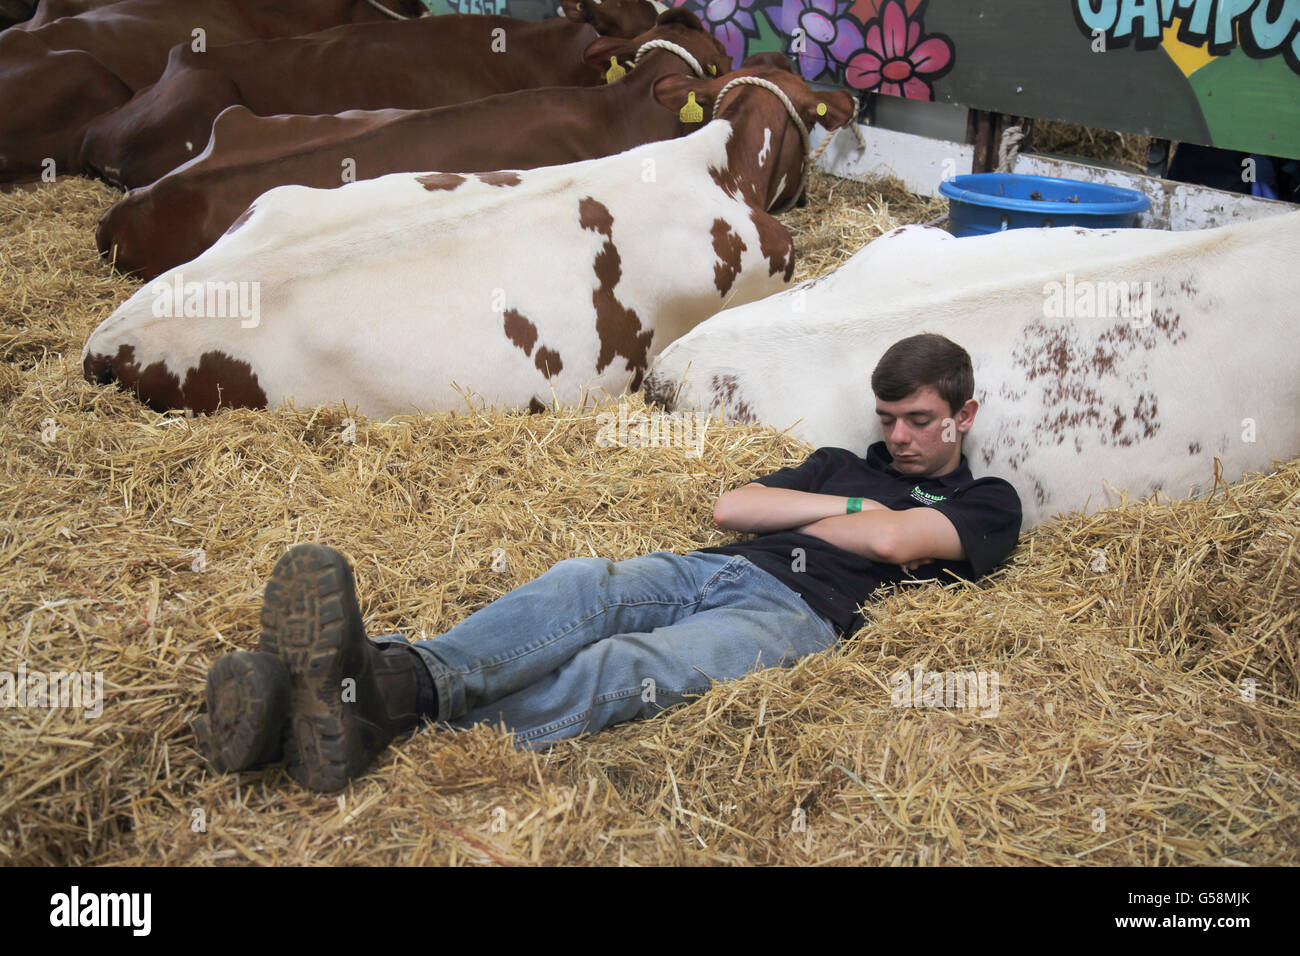 asleep among the cows at the south of england show ardingly - Stock Image